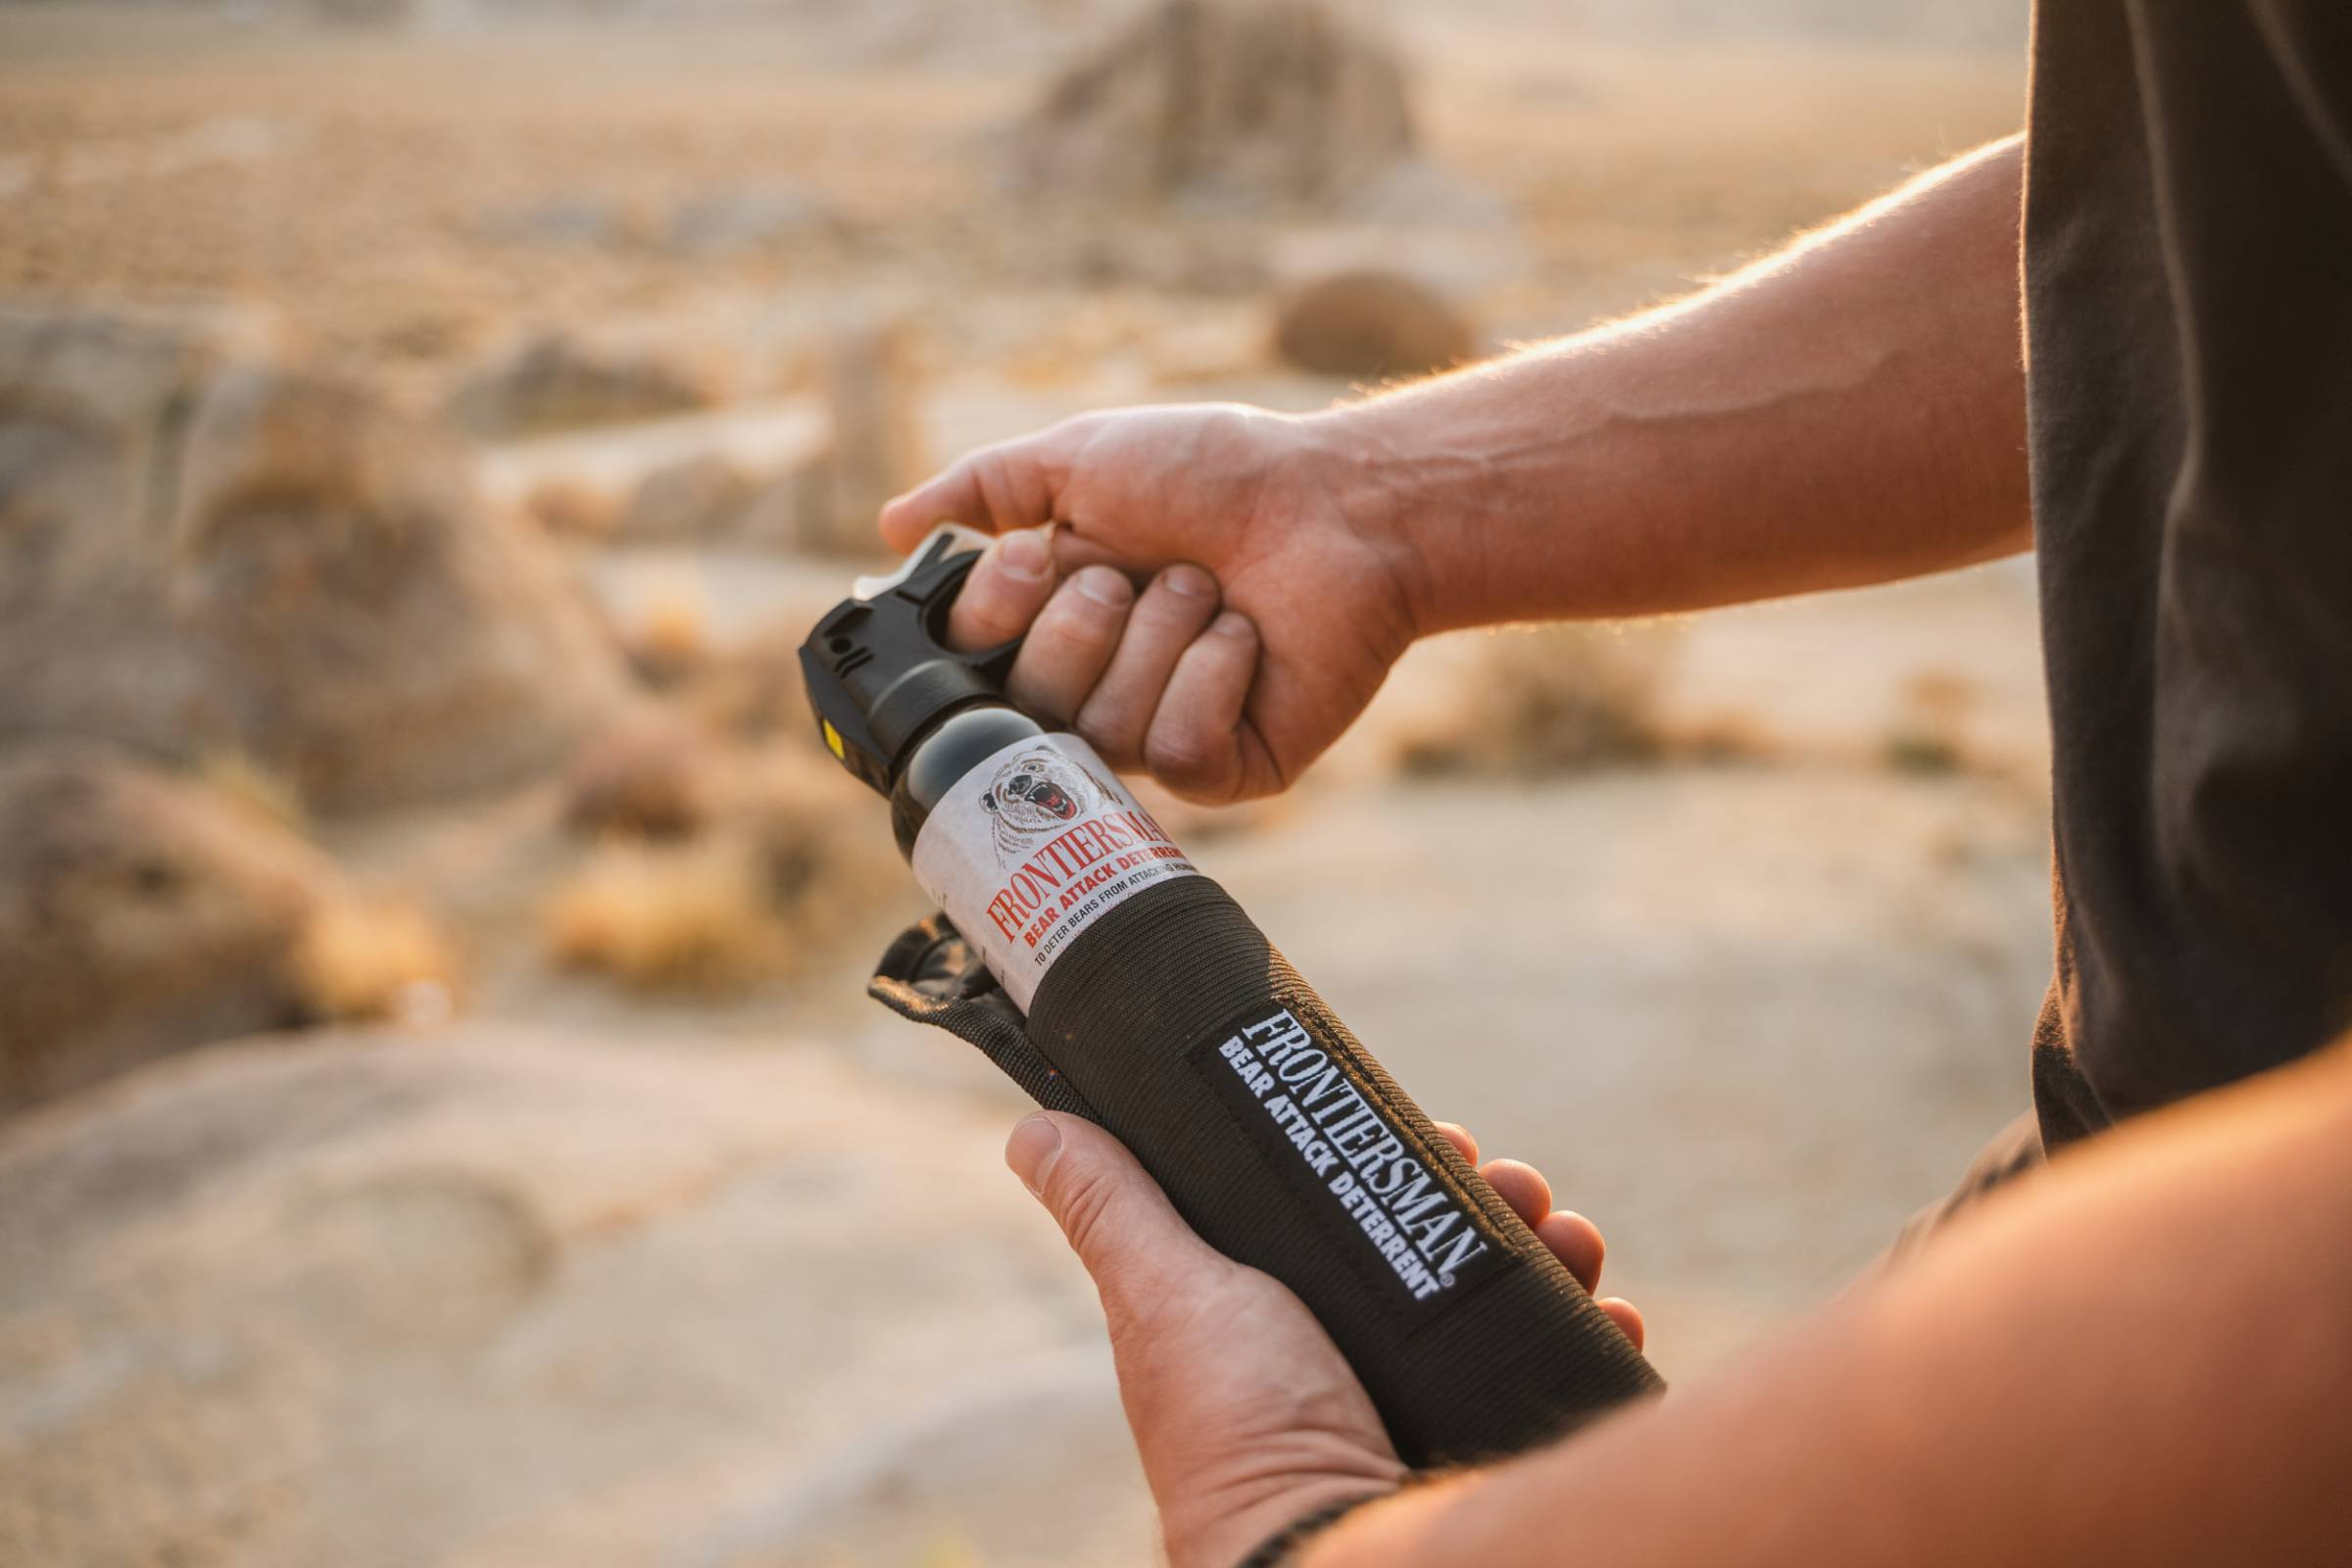 pulling frontiersman bear spray out of holster